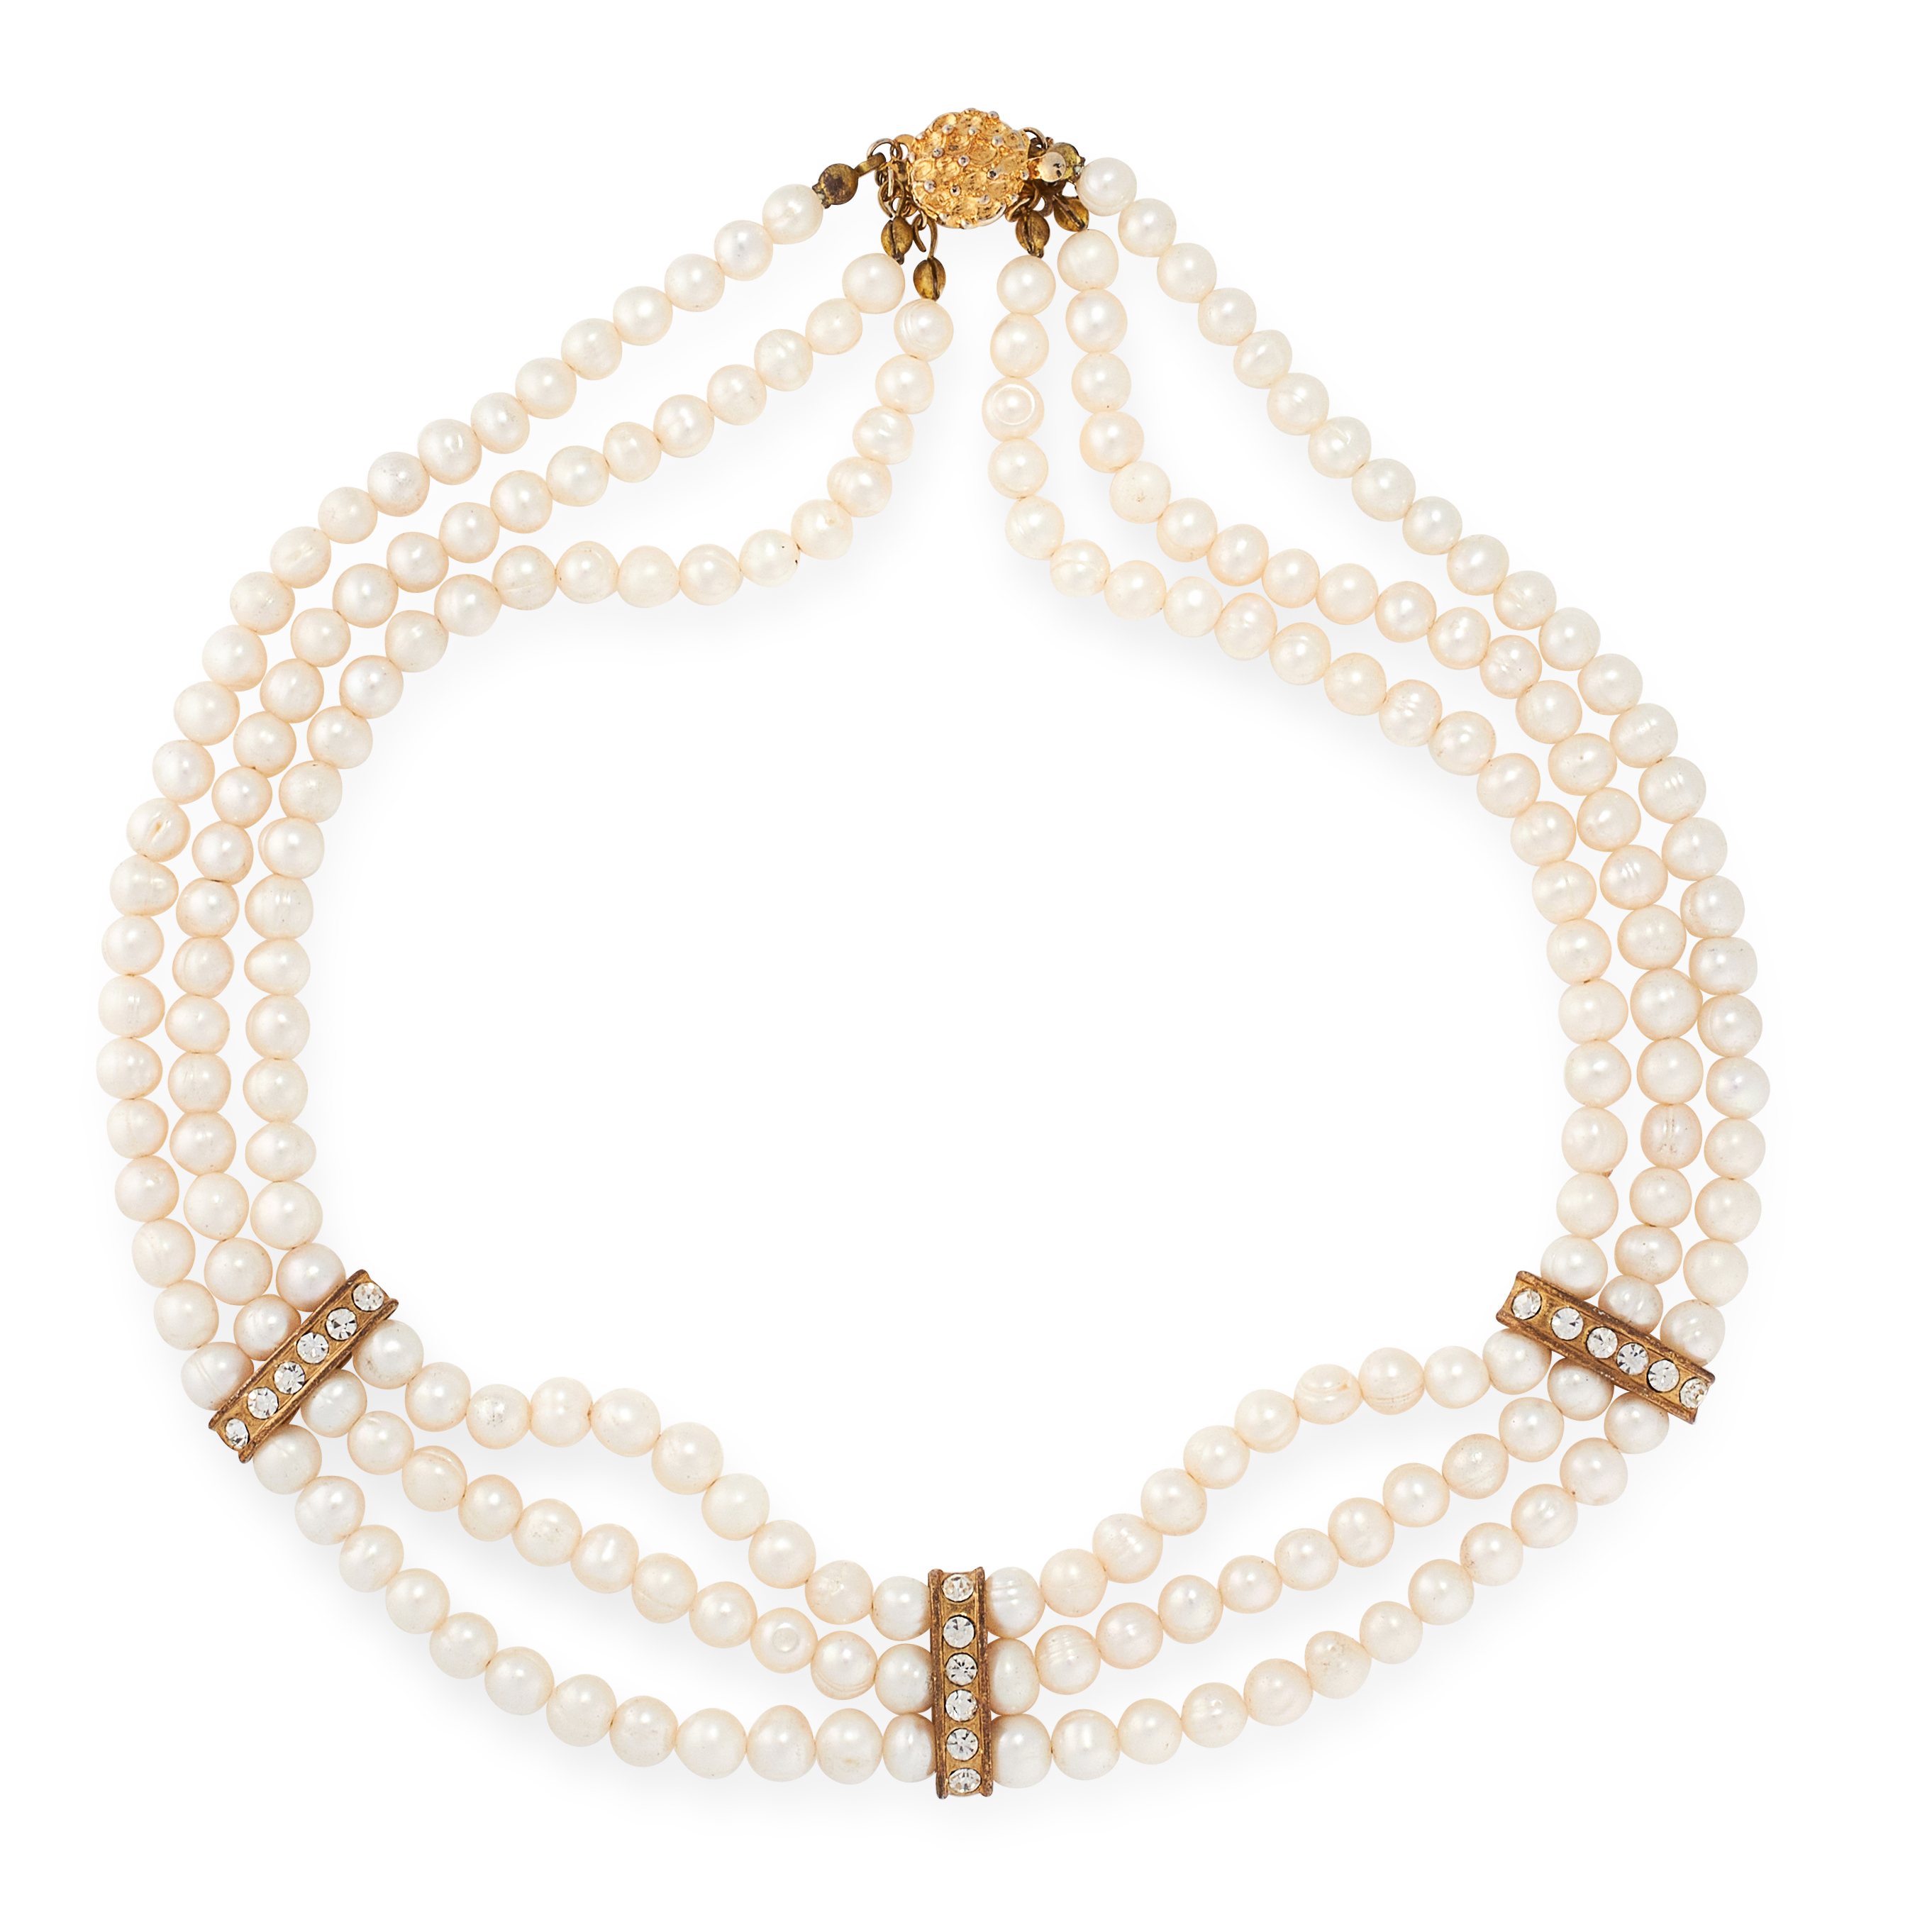 A PEARL CHOKER NECKLACE comprising of three rows of pearl beads ranging from 6.1mm-6.6mm, with paste